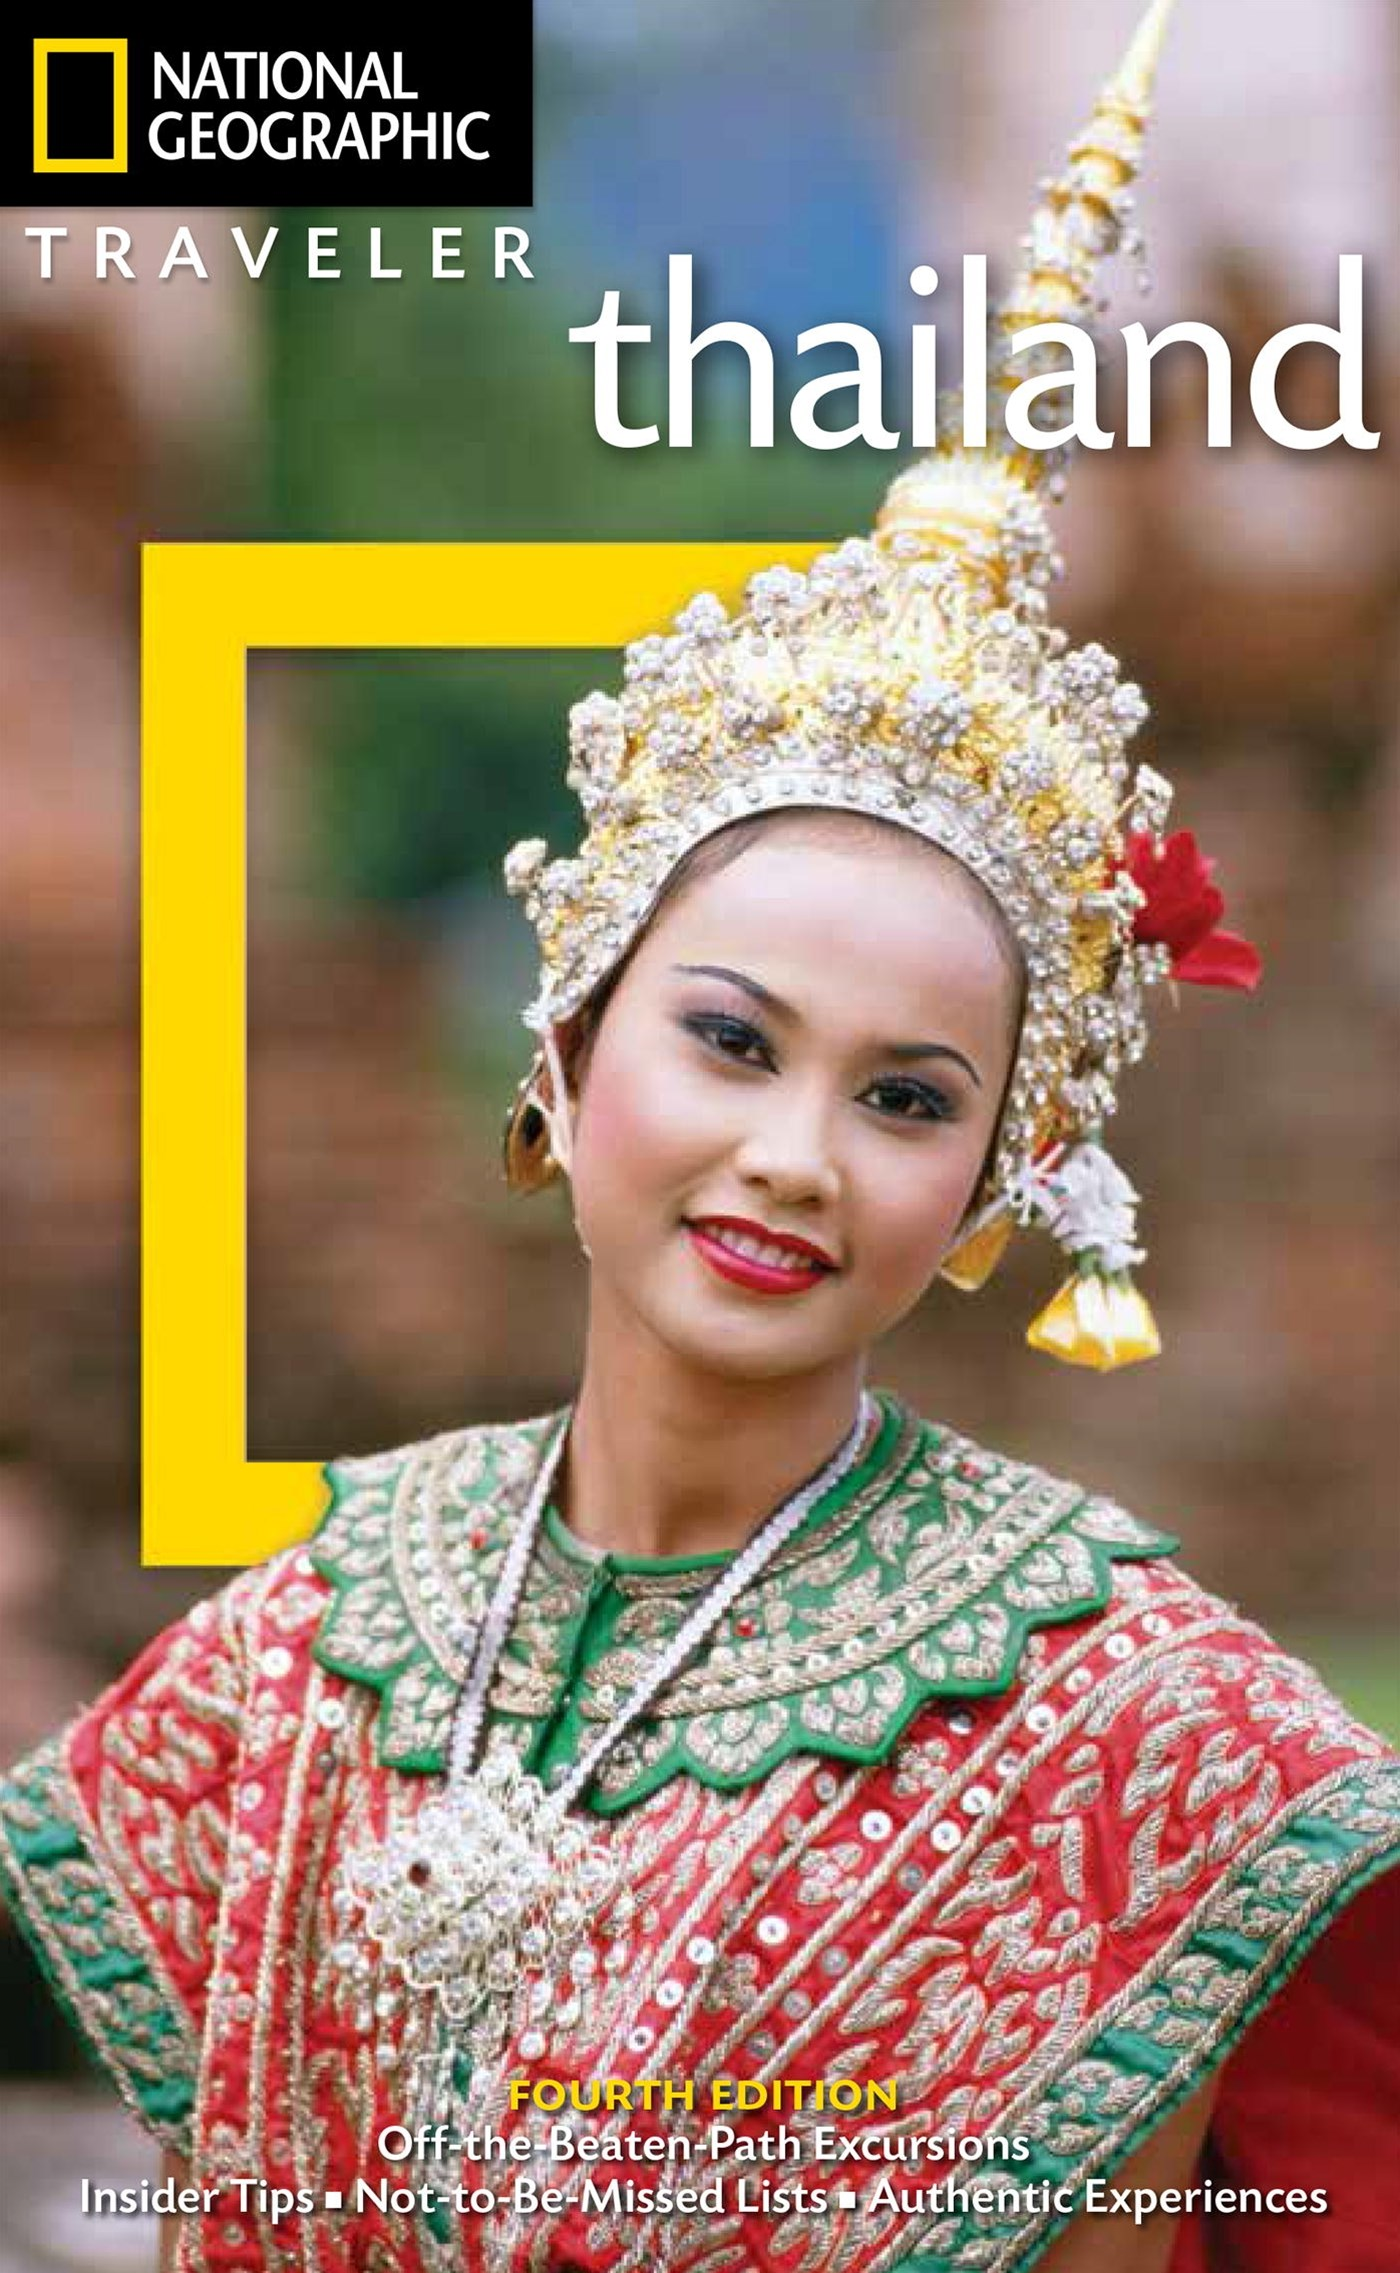 National Geographic Traveler Thailand, 4th Edition